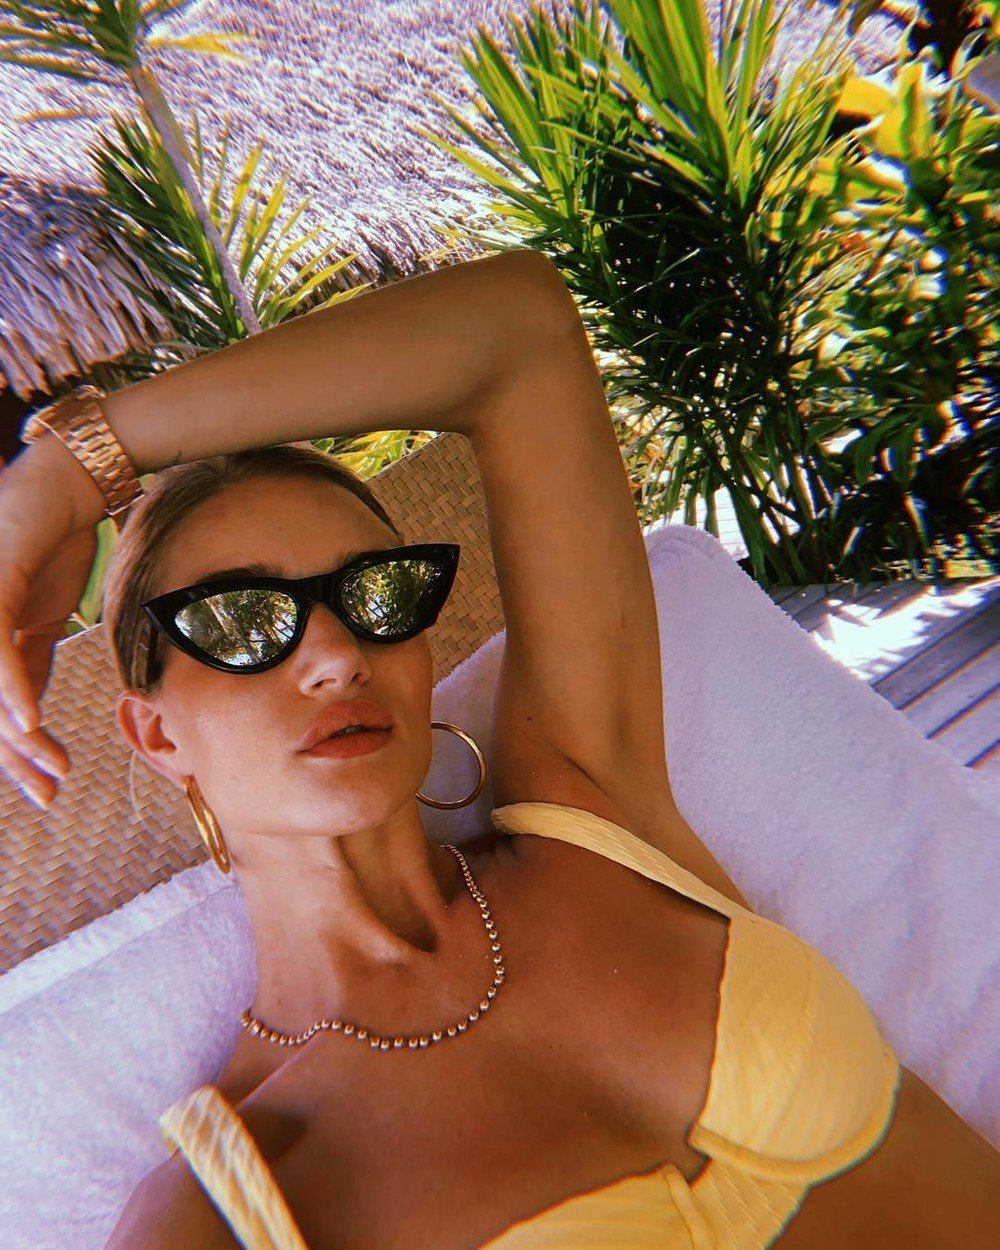 Rosie Huntington-Whiteley releases a photo on Instagram with the following caption: